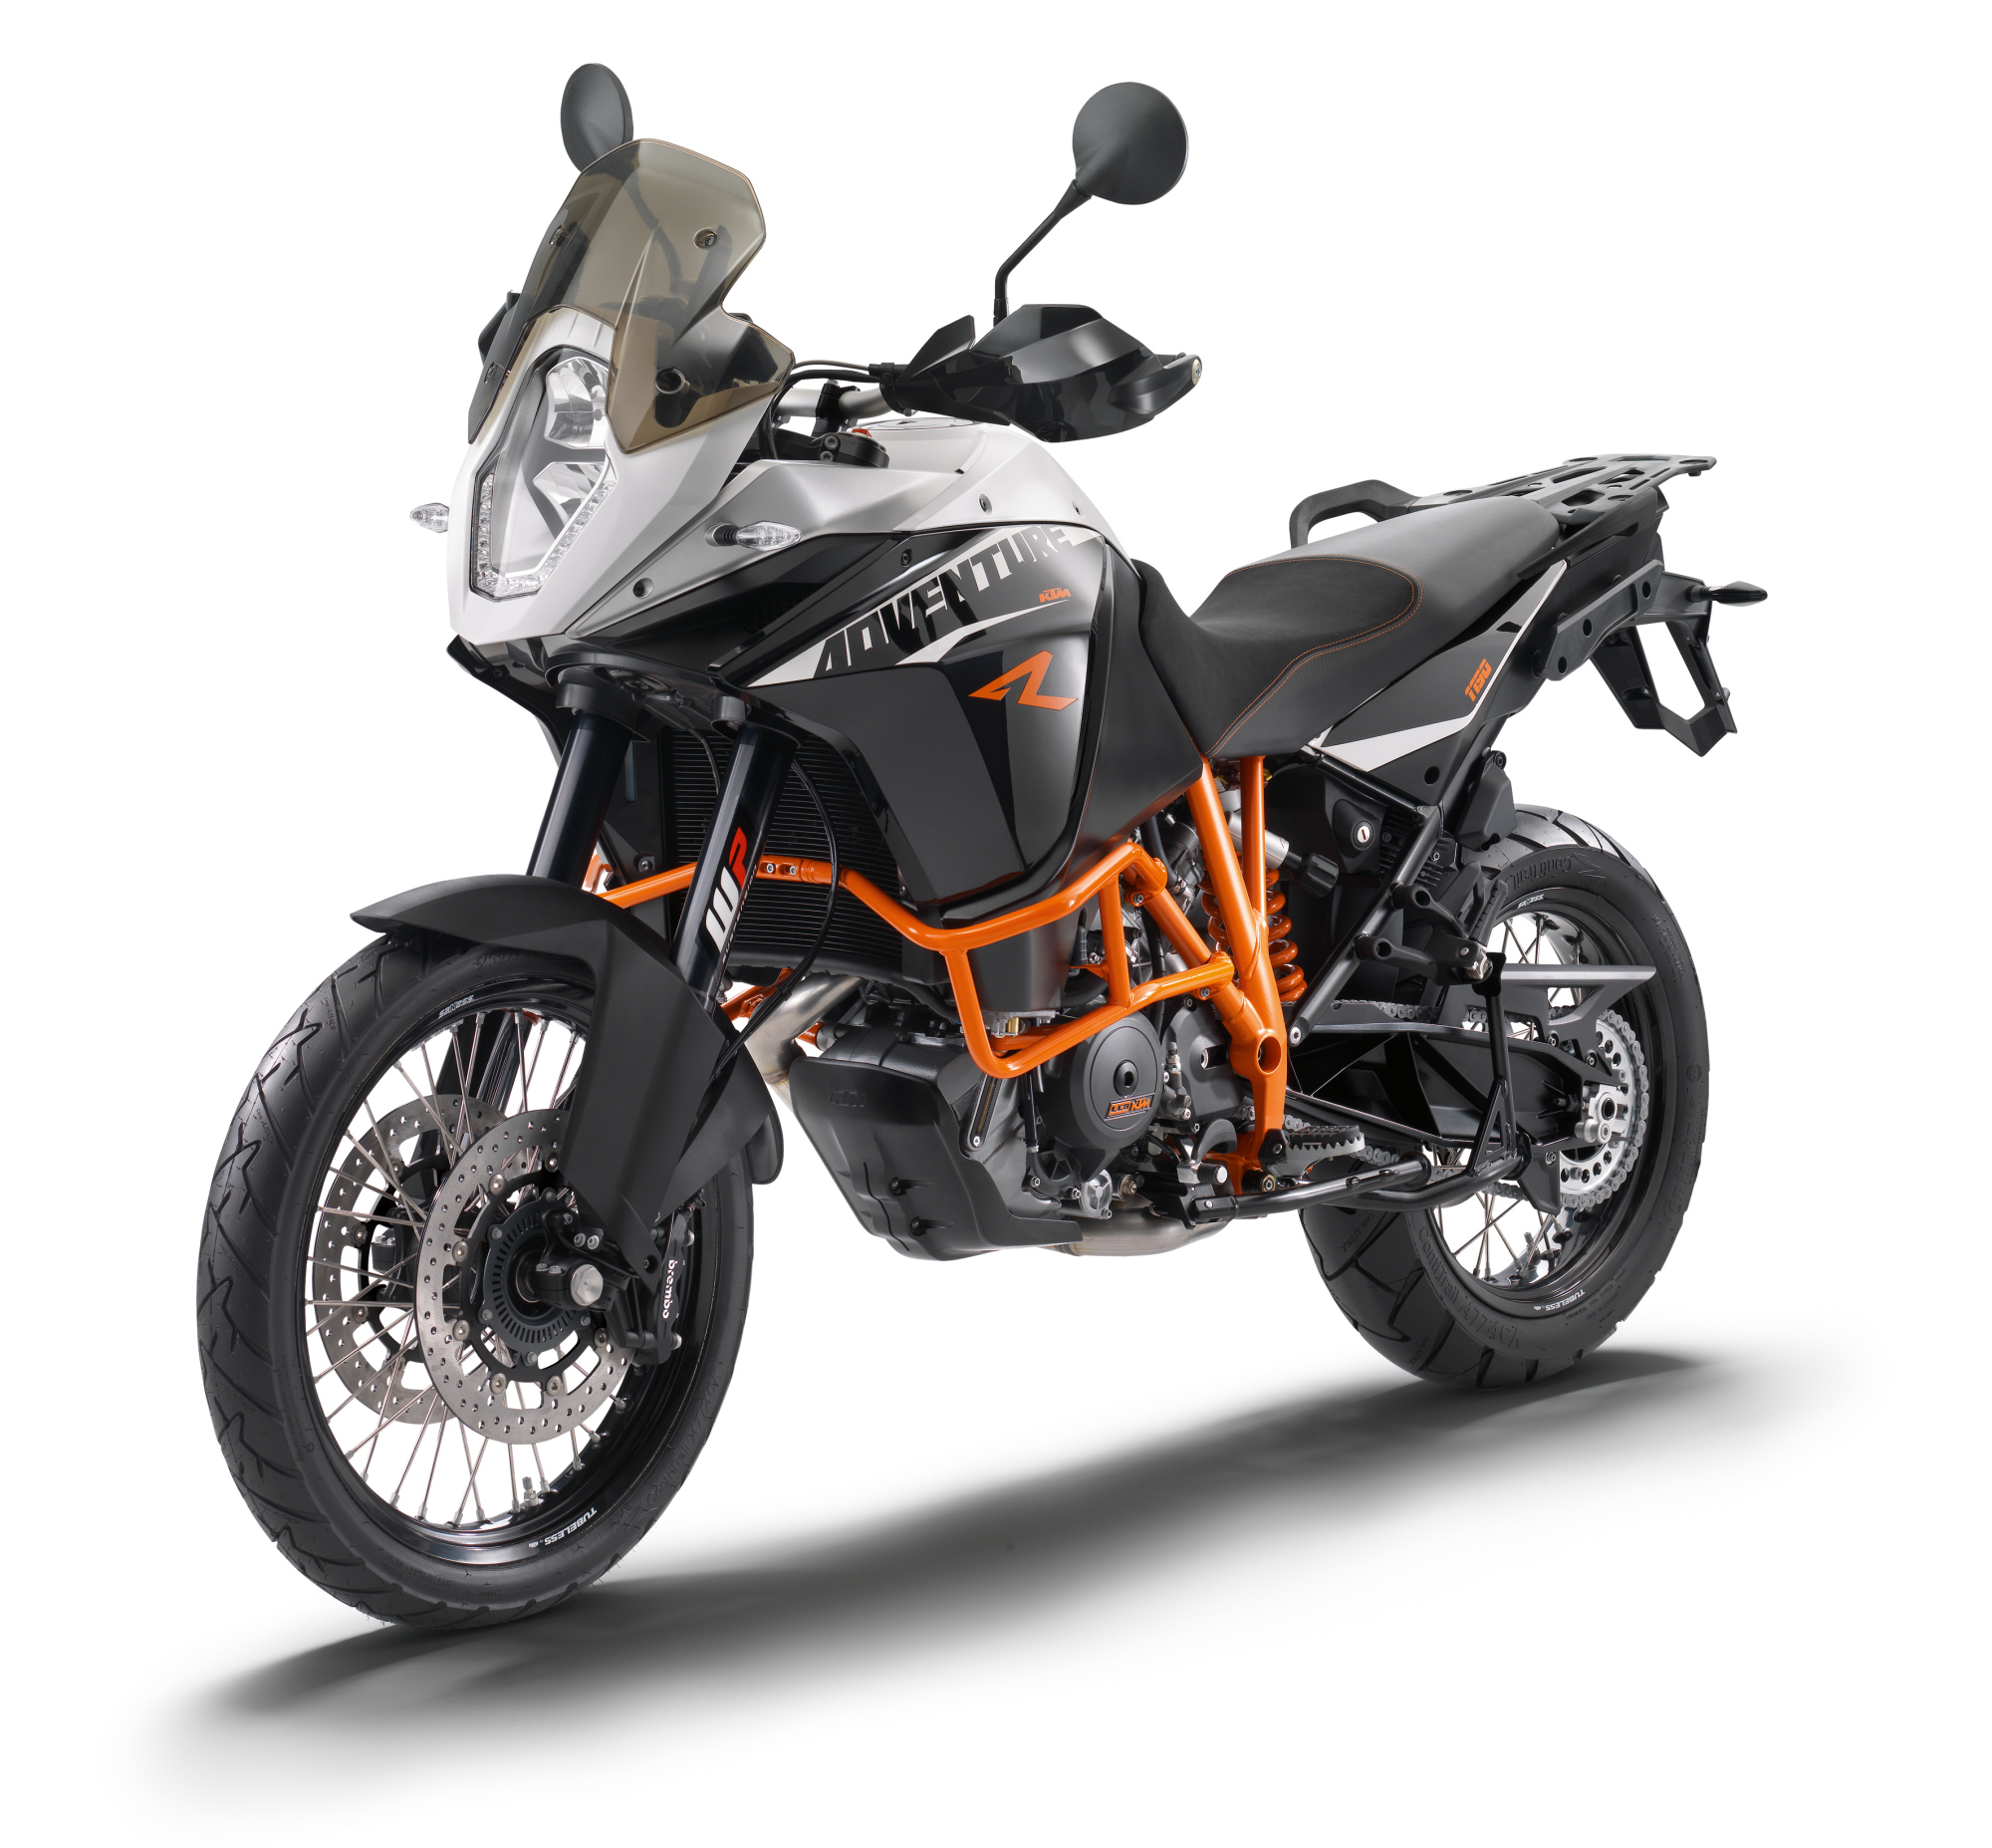 KTM 1190 Adventure R 2014 - Enduro